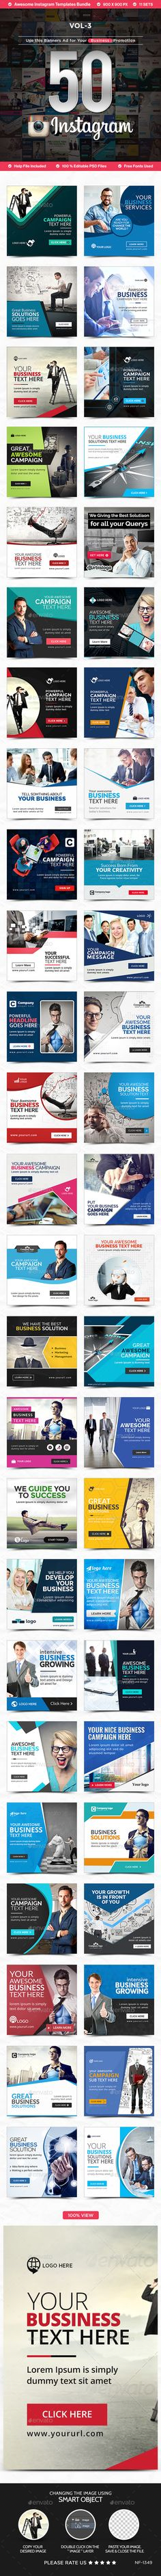 Instagram Banner Ad Template PSD - 50 Design. Download here: http://graphicriver.net/item/instagram-banner-ad-templates-50-designs/16583974?ref=yinkira